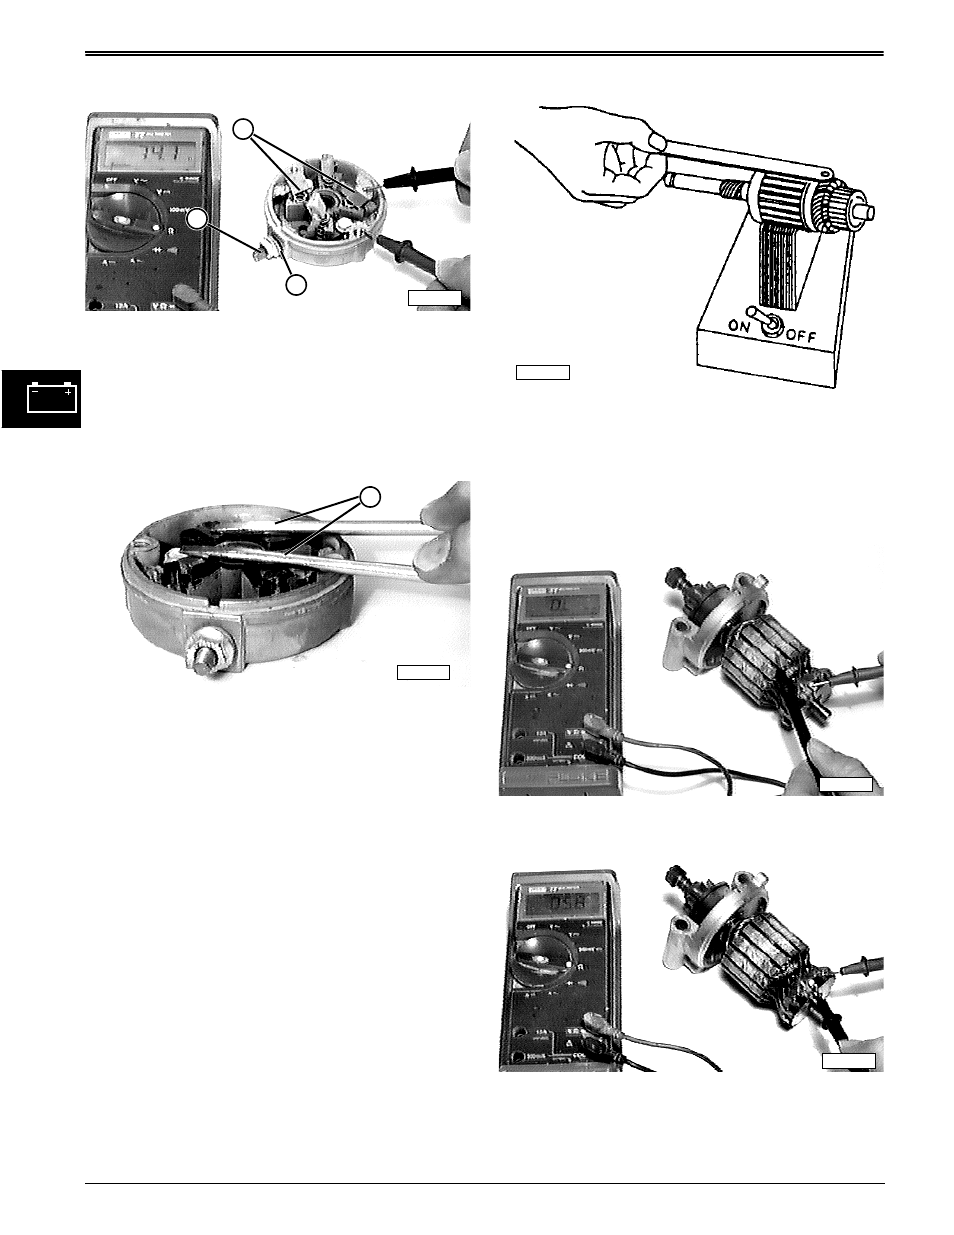 Repair starter armature | John Deere stx38 User Manual | Page 162 / 314